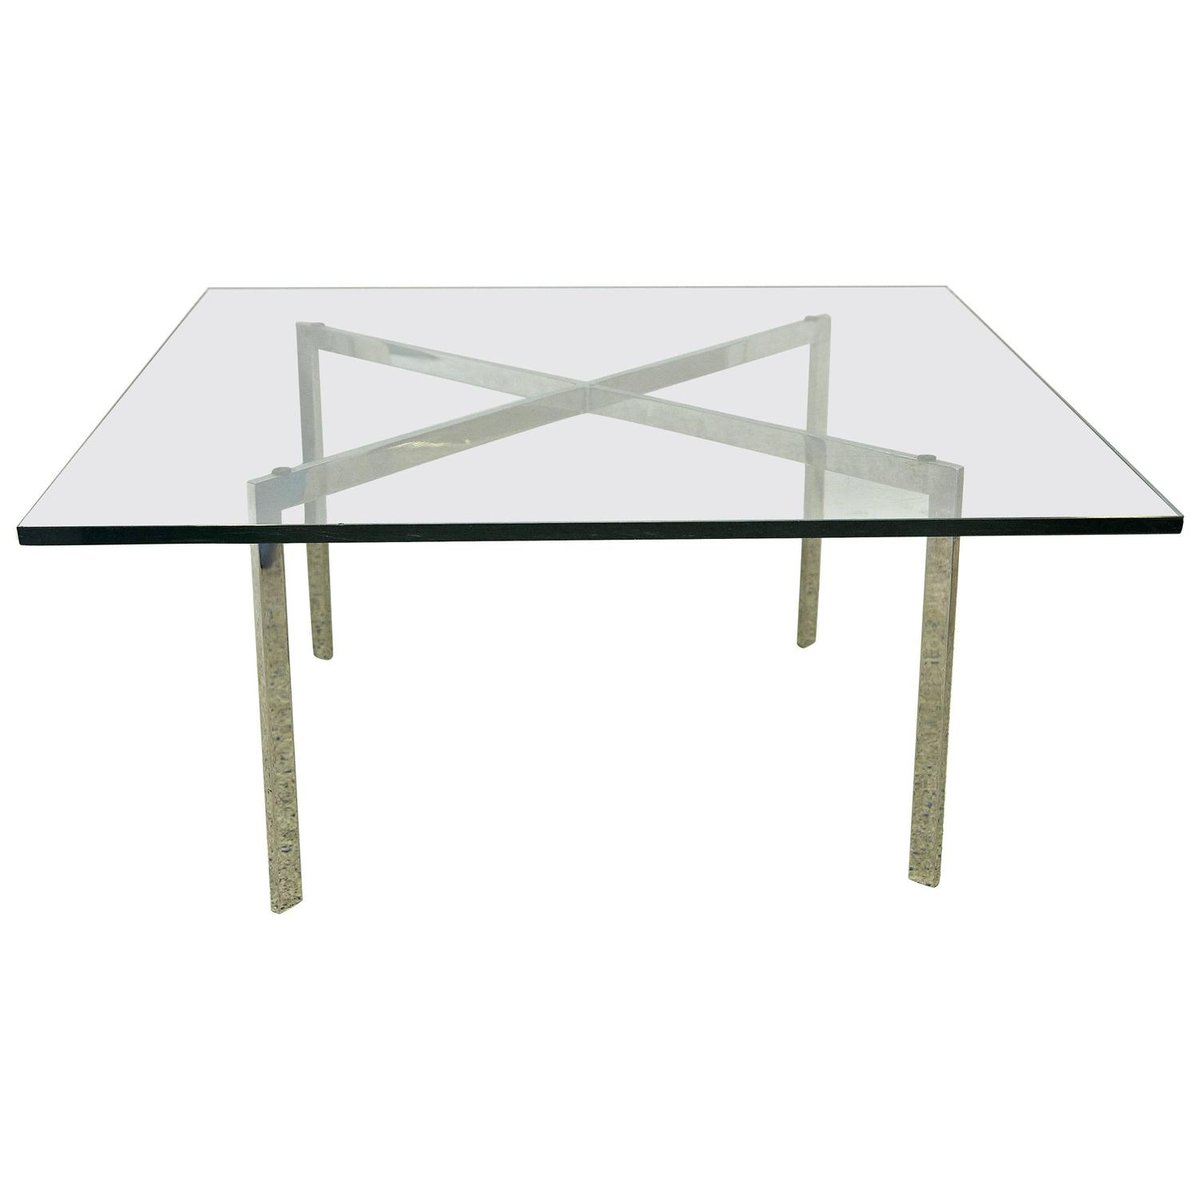 Barcelona table by mies van der rohe for knoll 1960s for sale at pamono - Barcelona table knoll ...